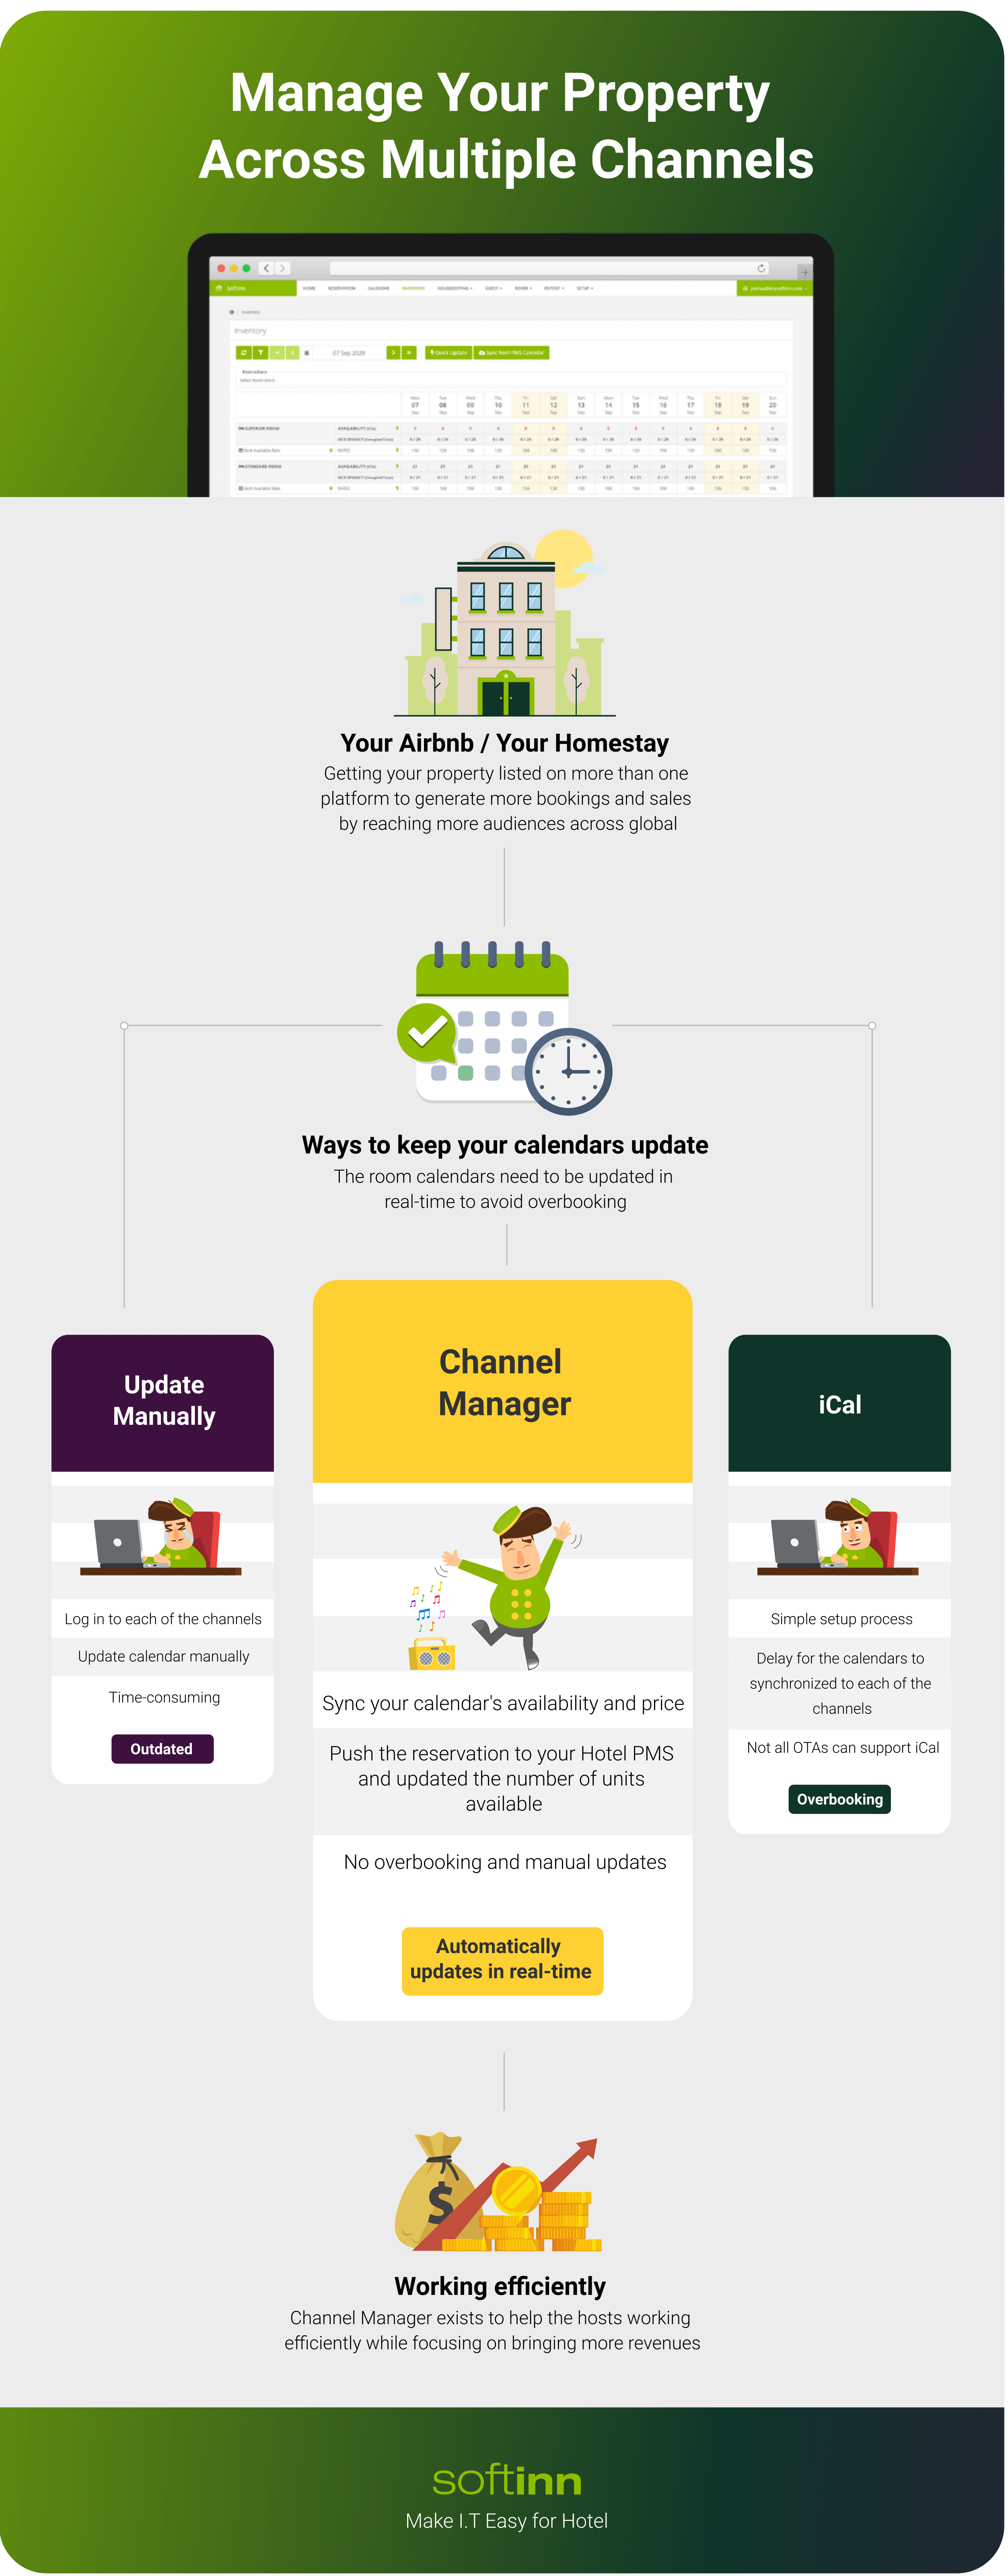 Infographic - Manage Your Property Across Multiple Channels - compressed with tinpng T3